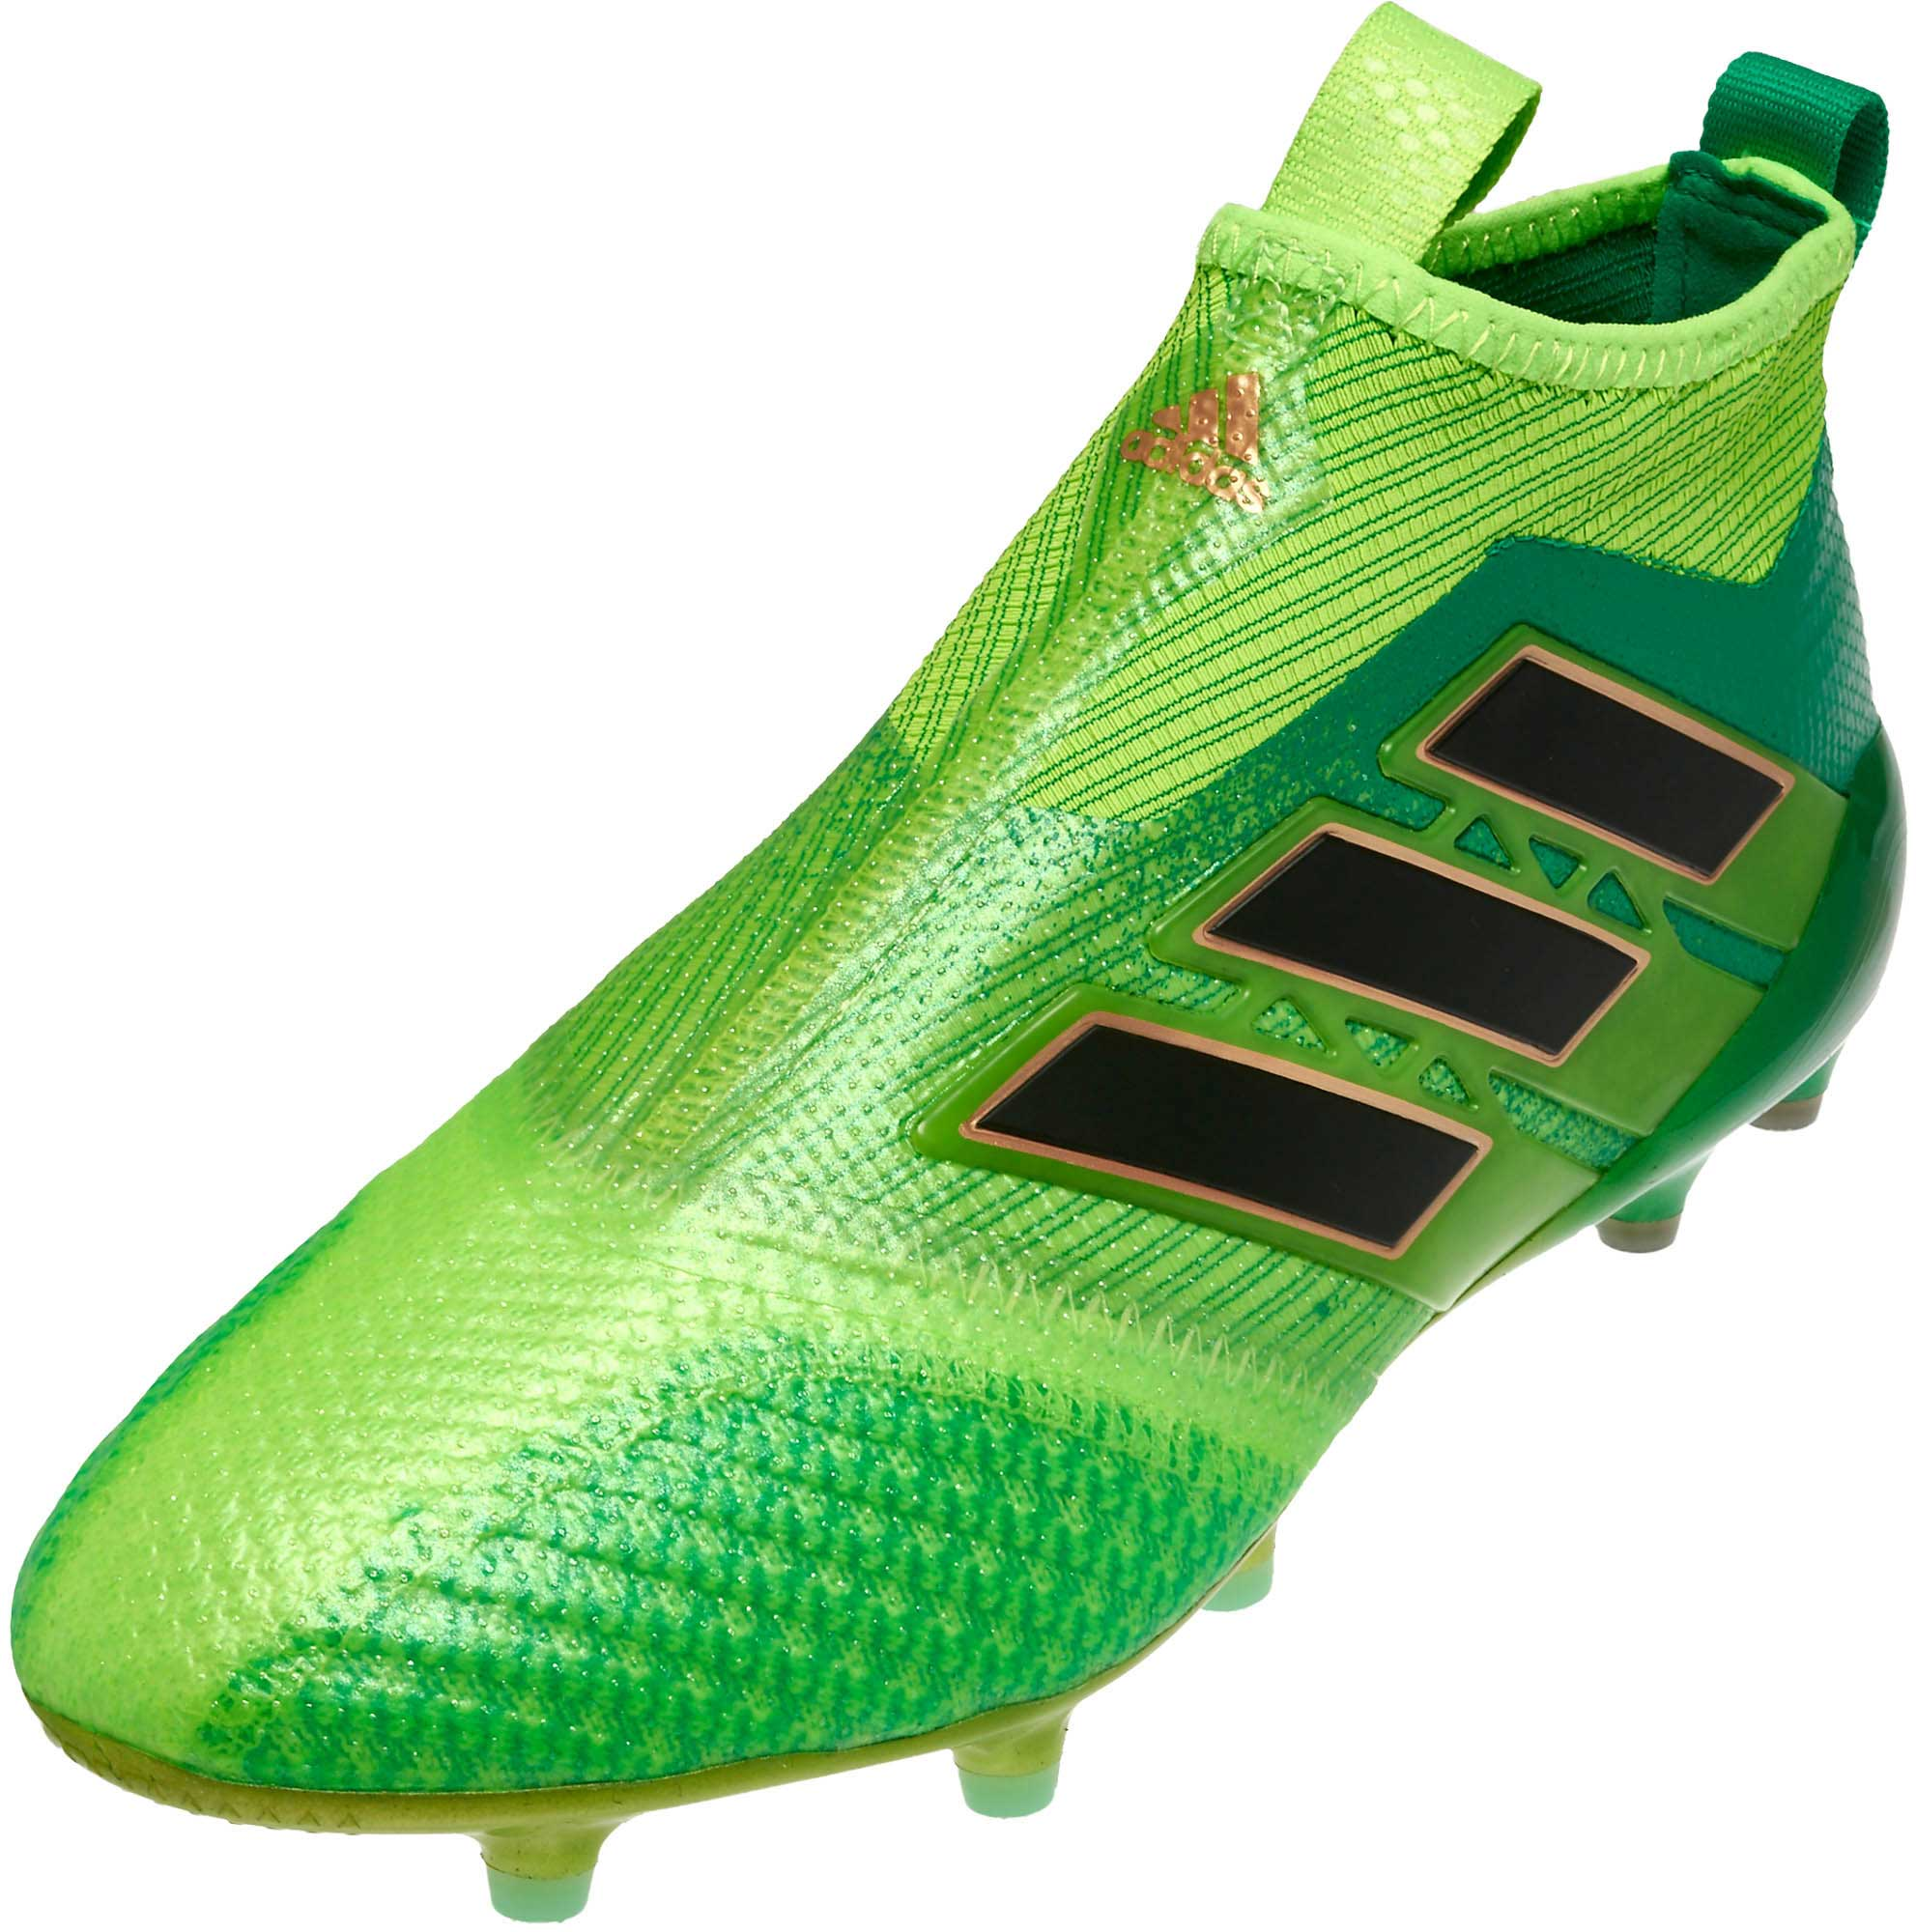 huge discount 62031 f6cfc adidas ACE 17 Purecontrol FG – Solar Green/Black